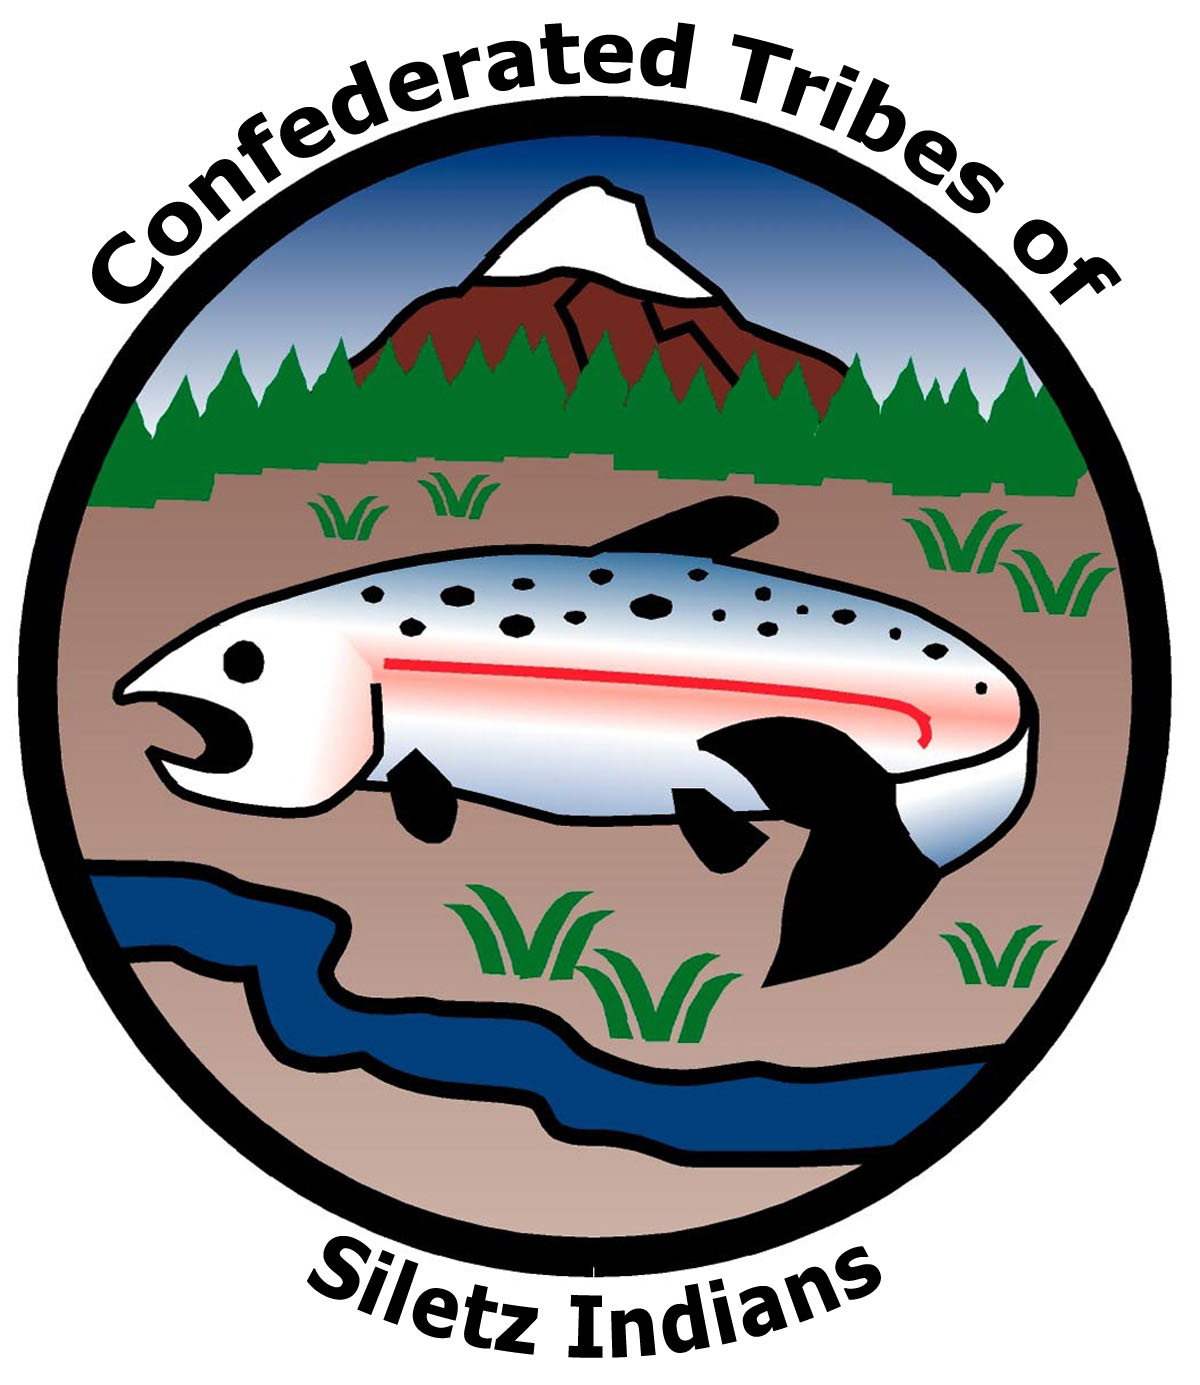 Confederated Tribe of the Siletz Indians Logo